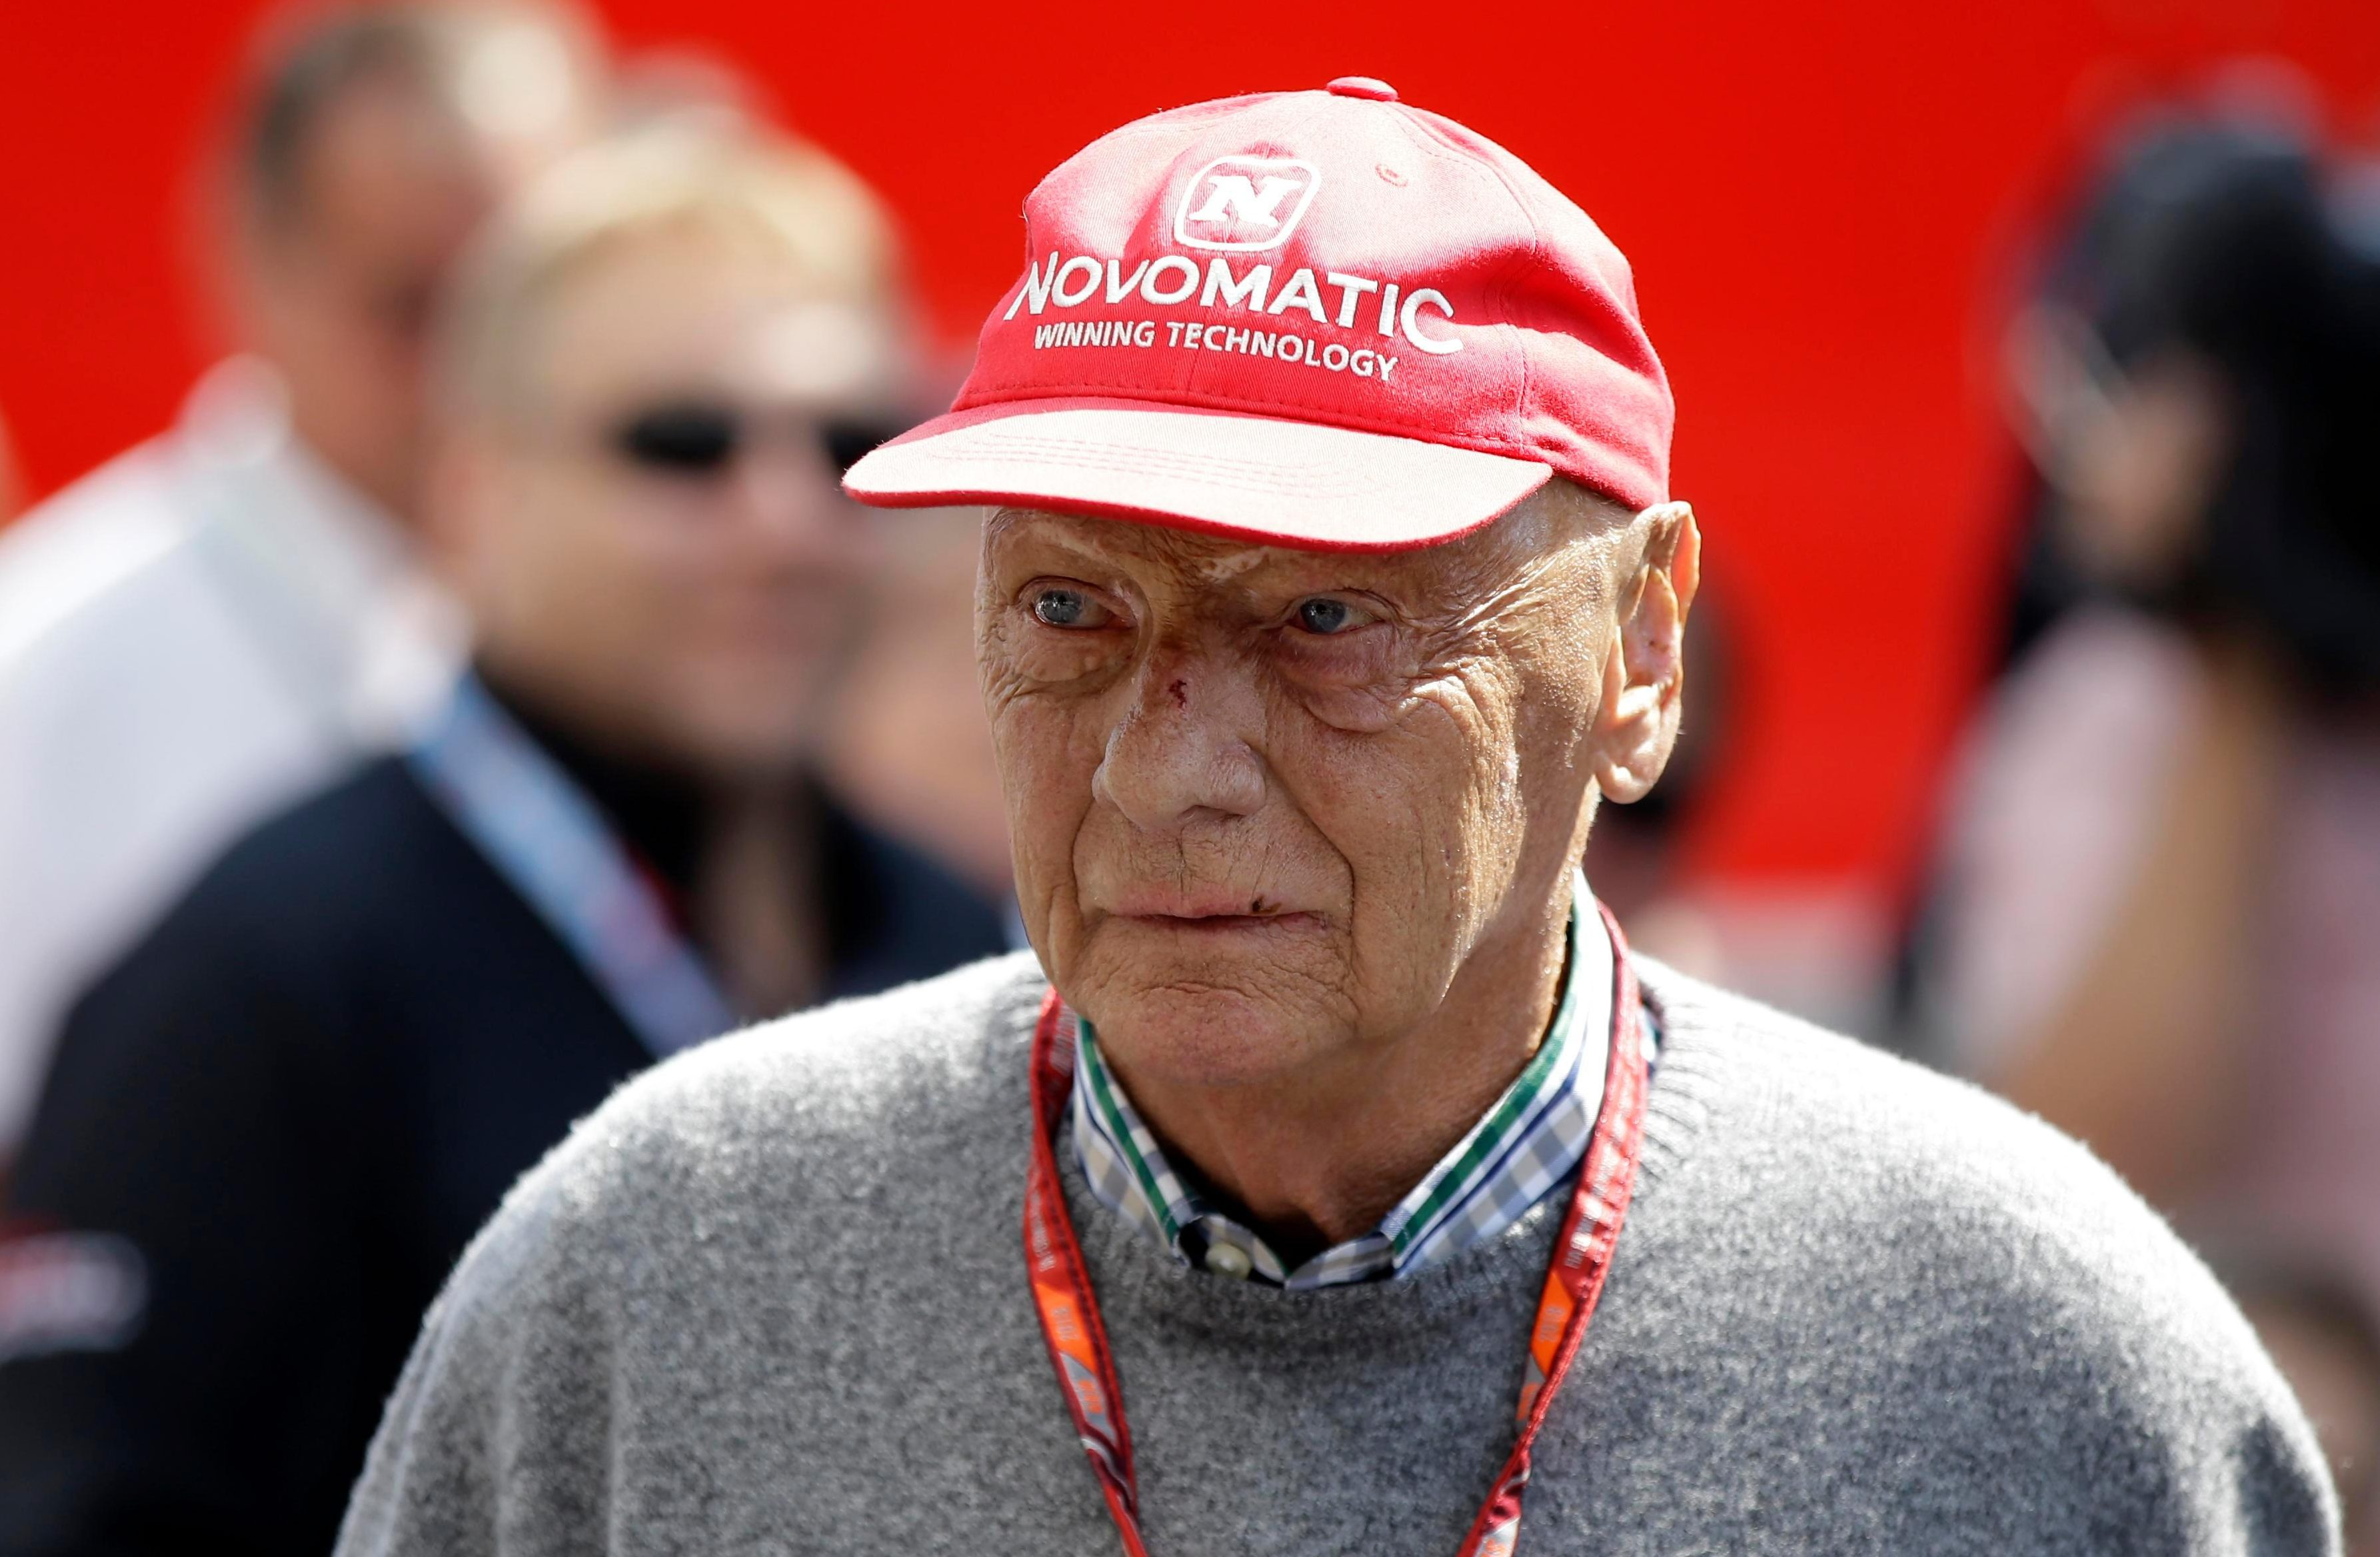 Niki Lauda has had a lung transplant after suffering lasting damage from his horrific racing accident in 1976at the Nurburgring in Germany